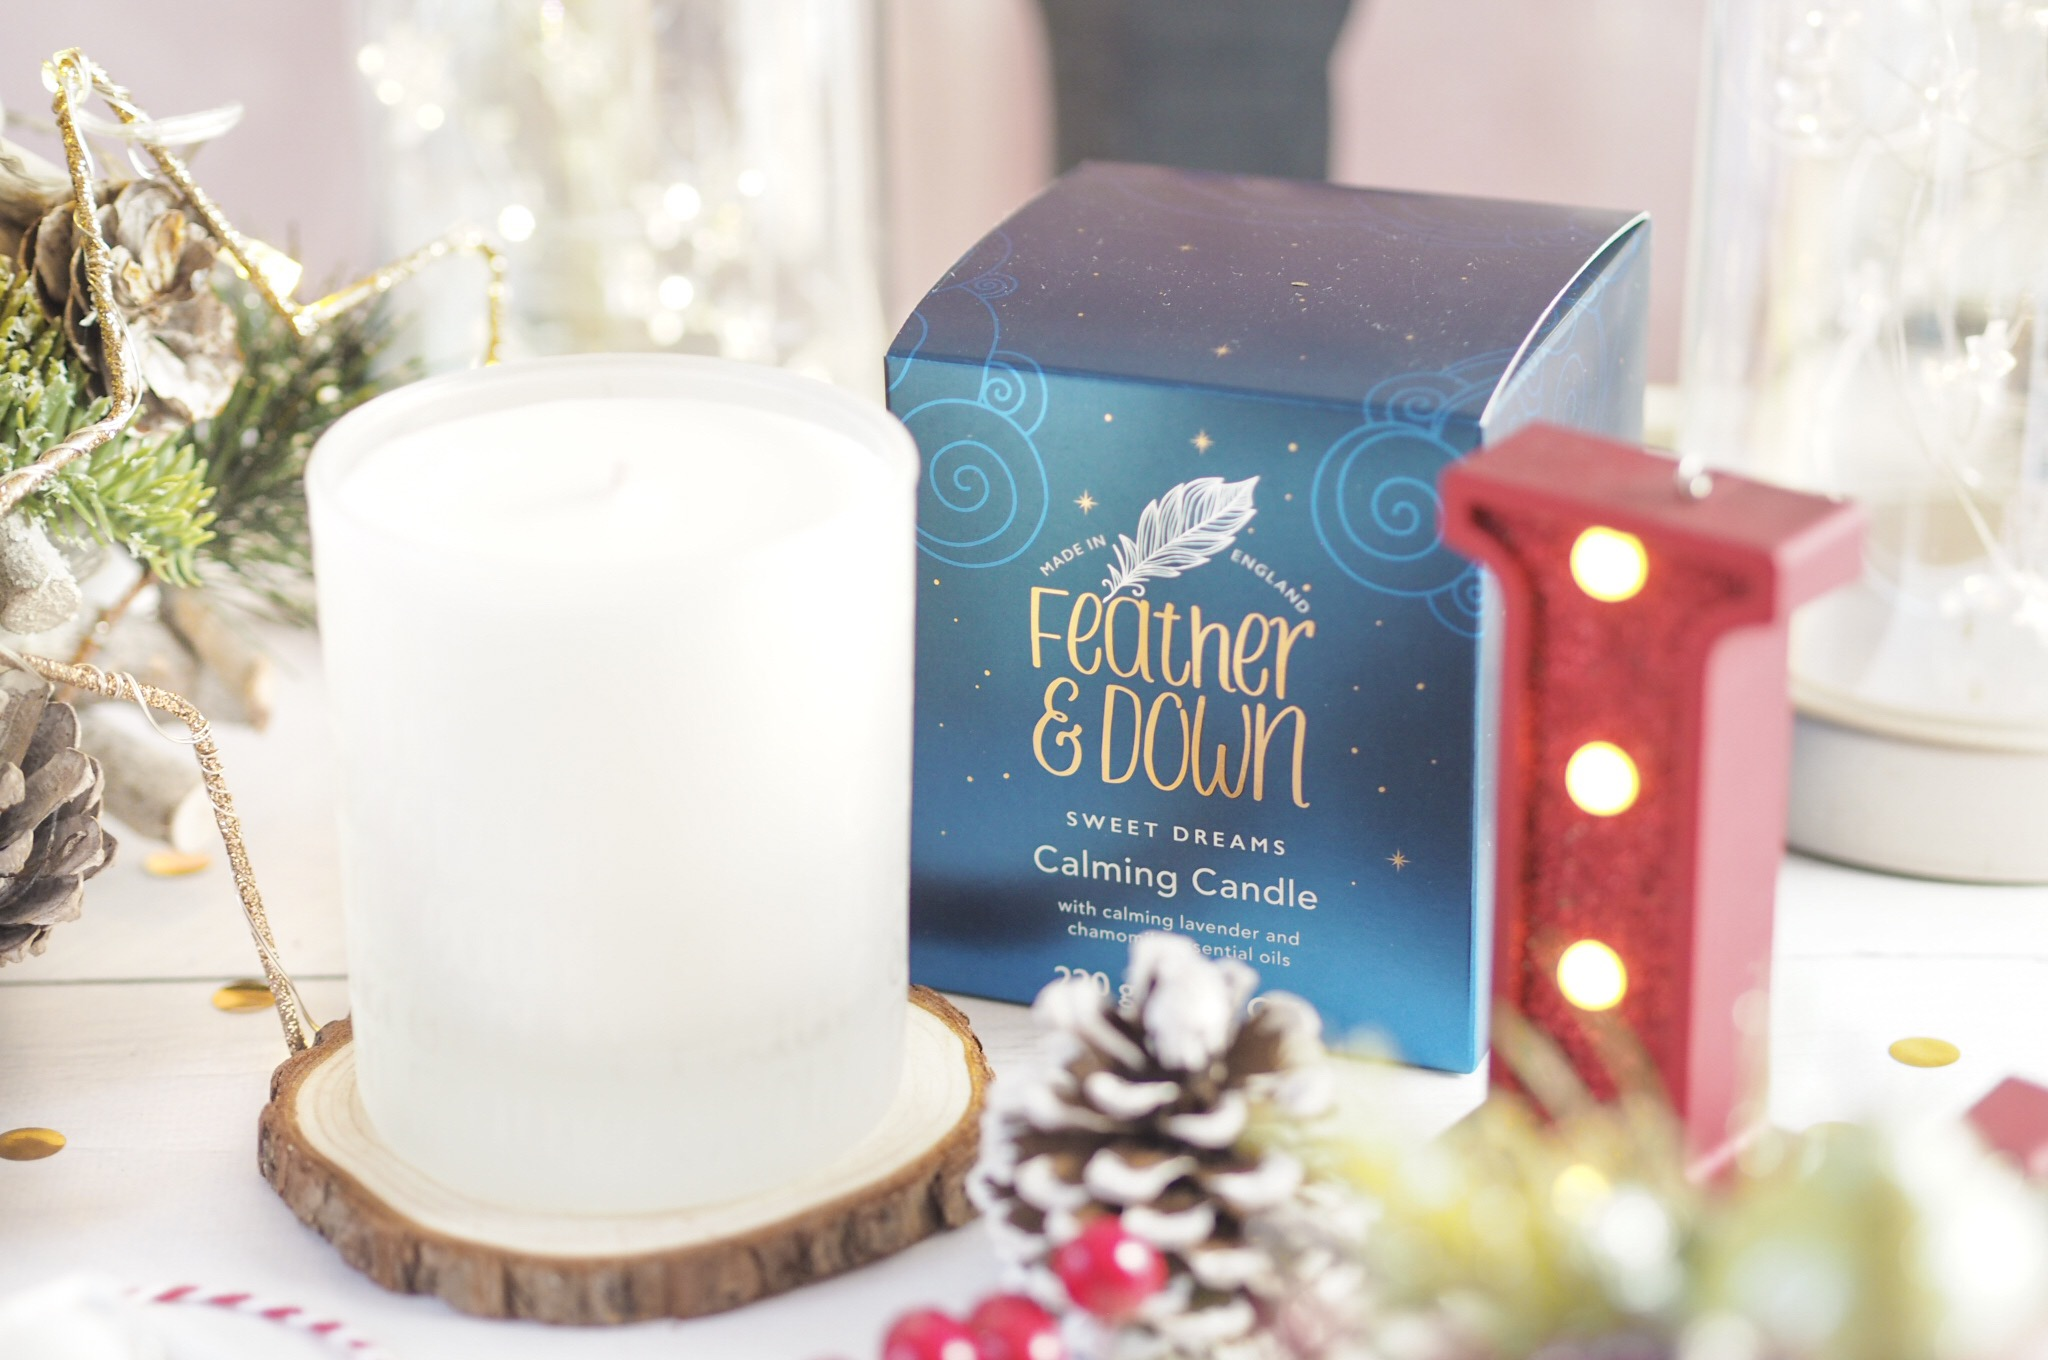 Feather & Down Calming Candle